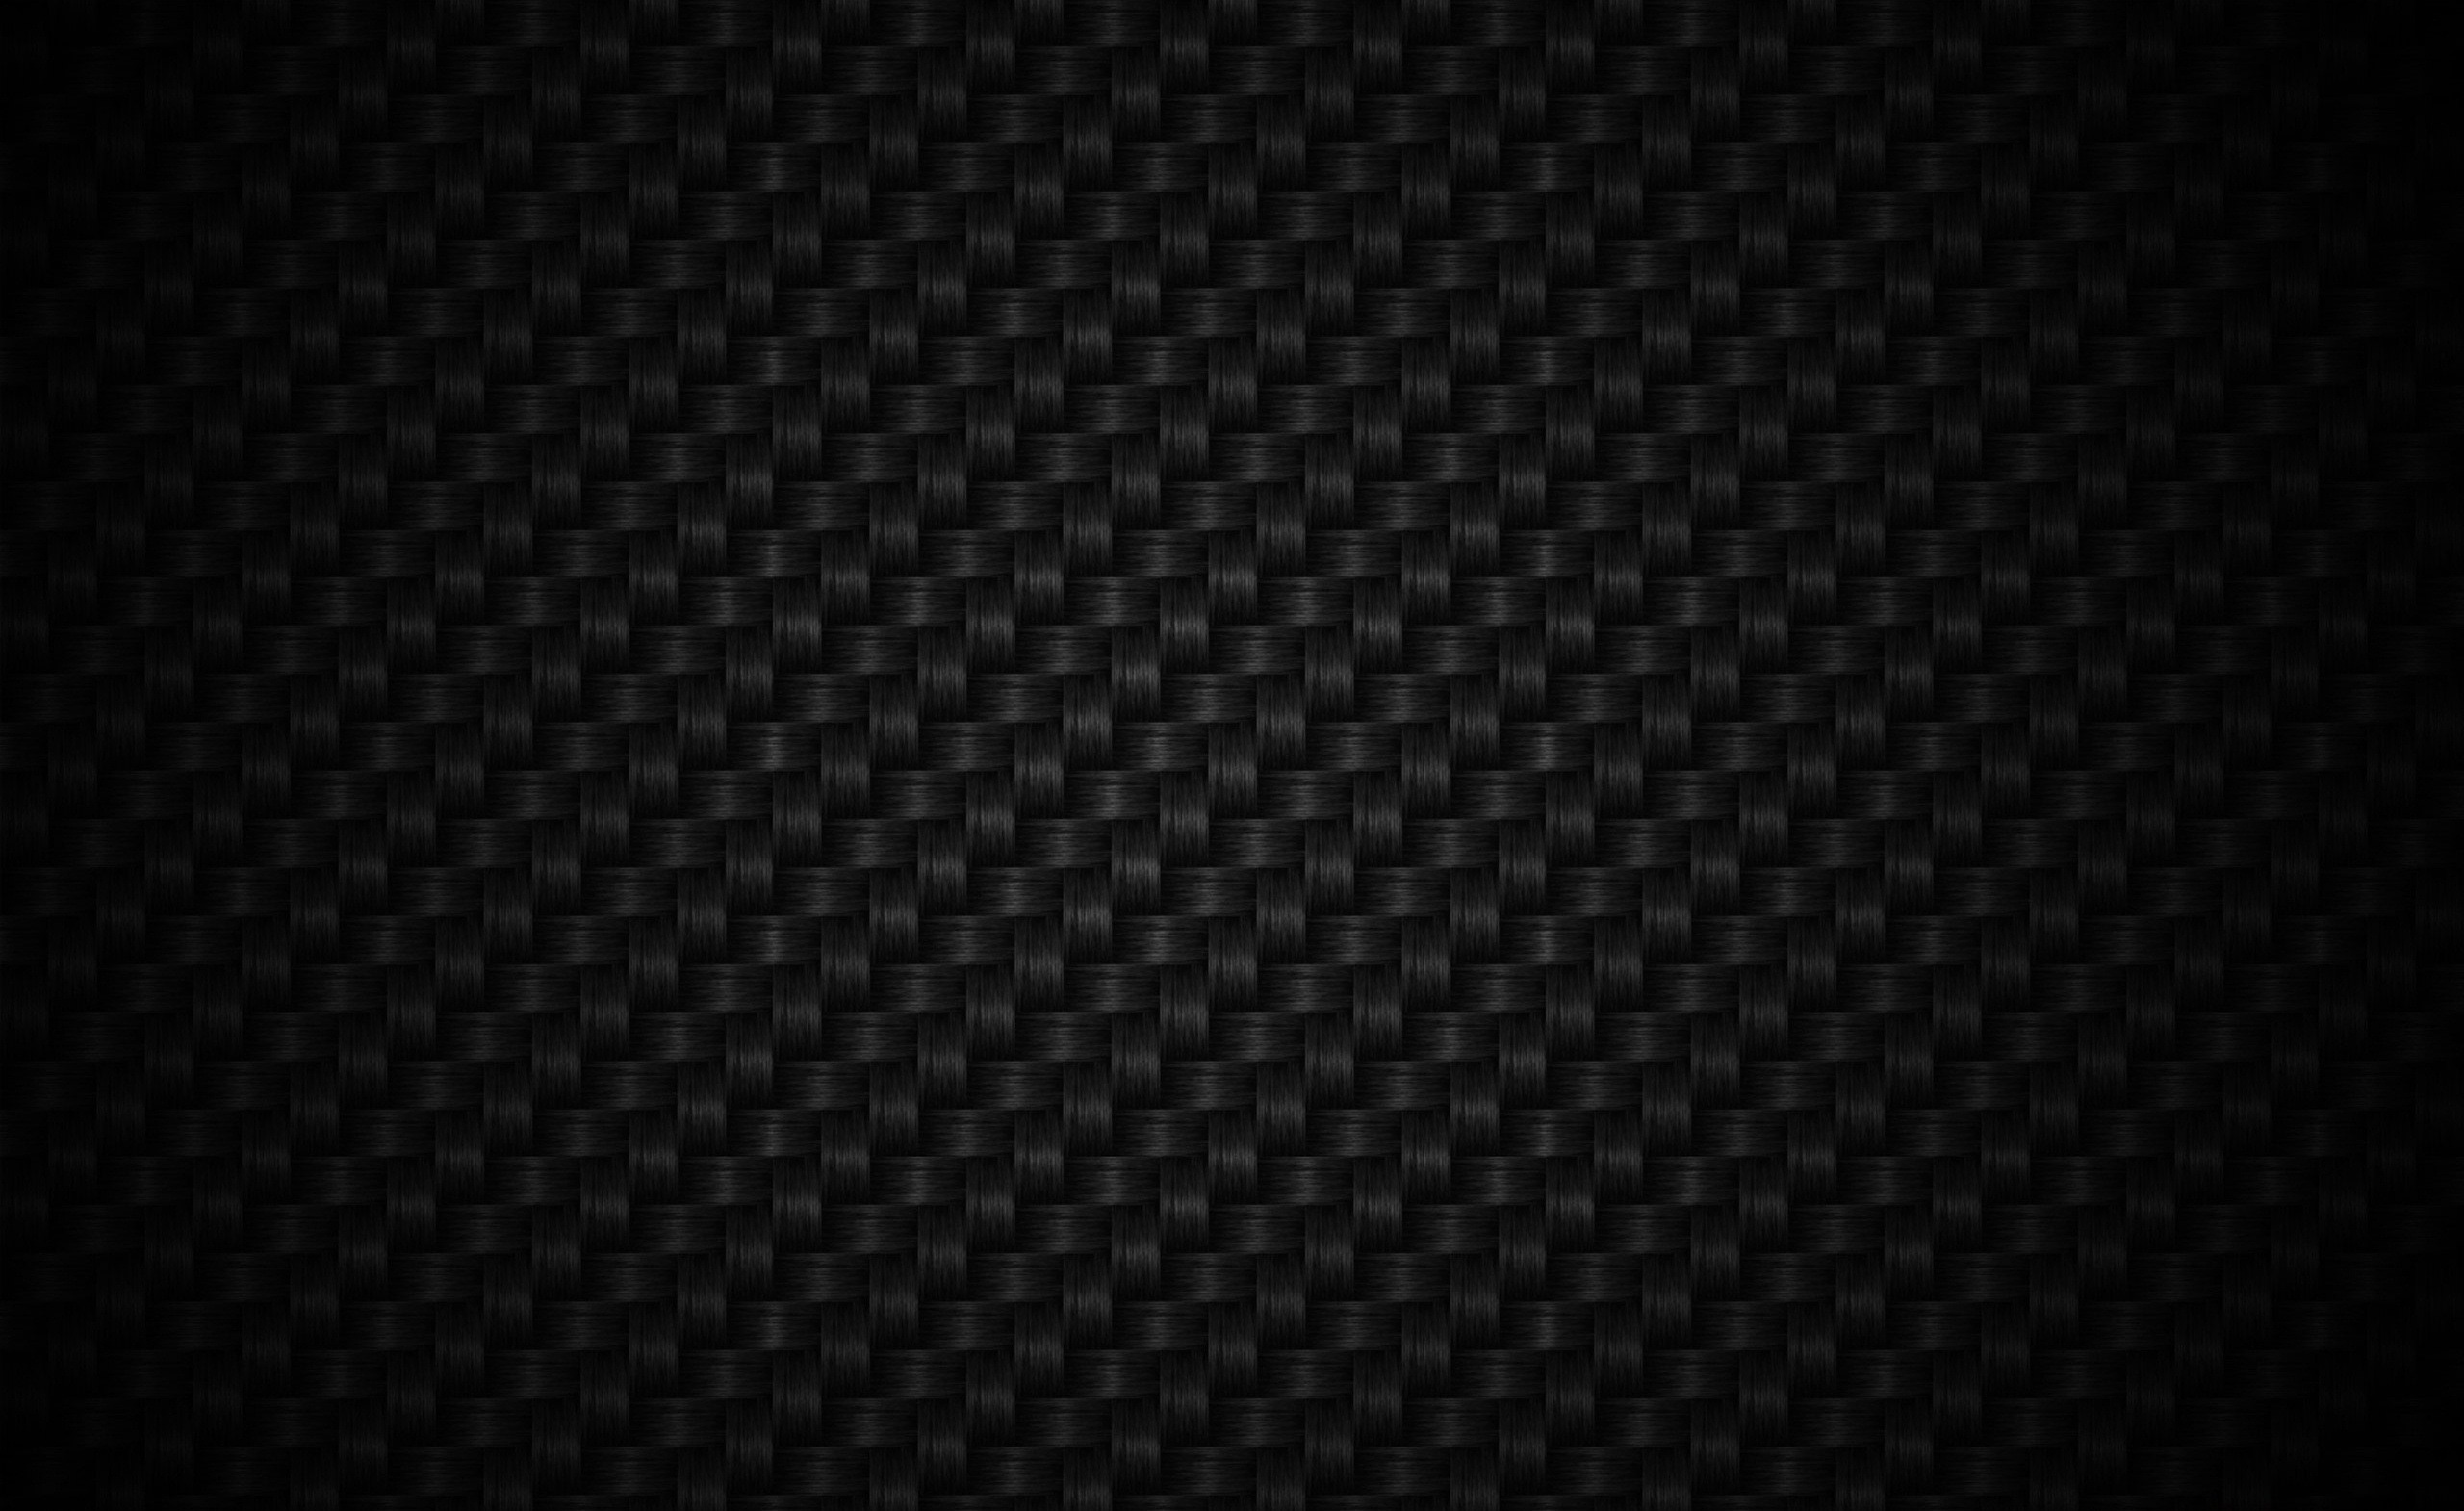 Black weave wallpaper black photo 26901058 fanpop for Dark pattern background